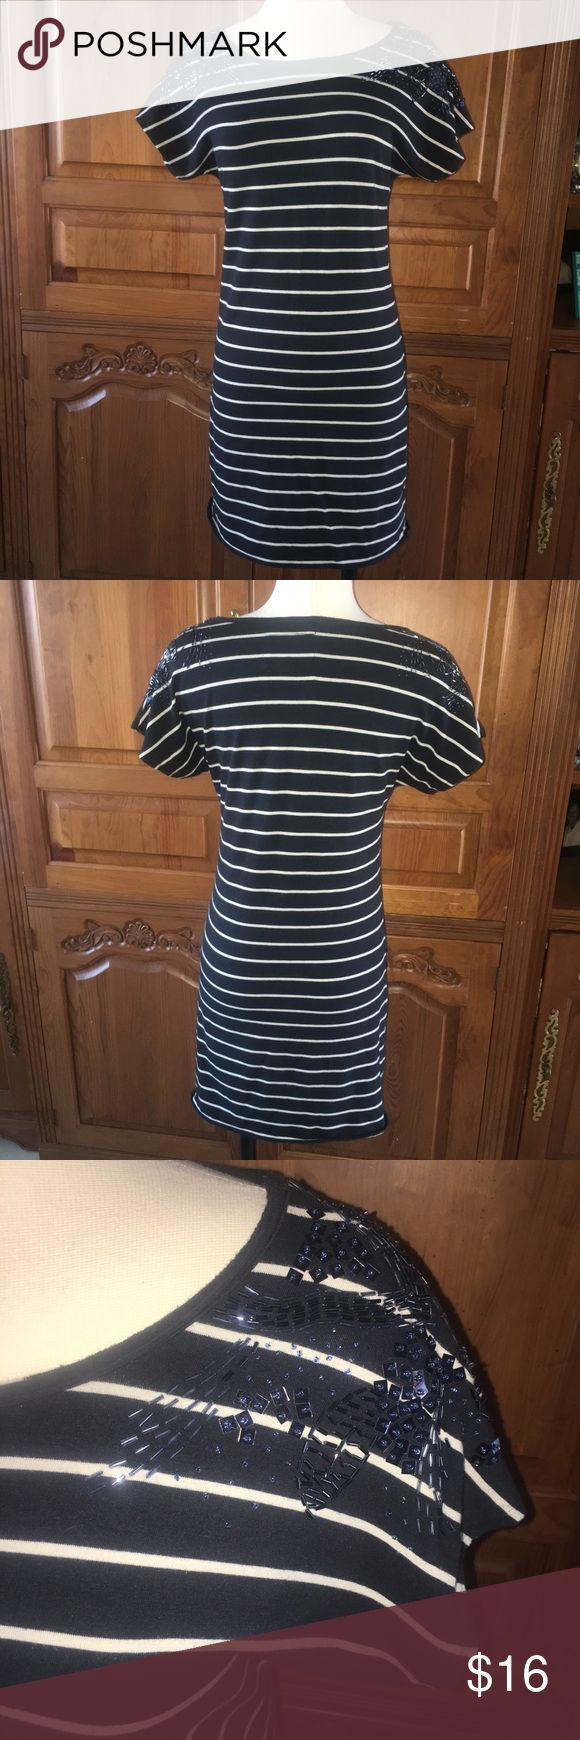 NWOT Forever 21 Navy/ Cream Striped & Sequin Dress NWOT Forever 21 Navy/ Cream Striped & Sequin Dress. Size Large. Stretchy material. Never wore this just tried on. It has gorgeous sequin and beadwork at the shoulder area going from front to back as well. The sleeves are dolman style. Forever 21 Dresses